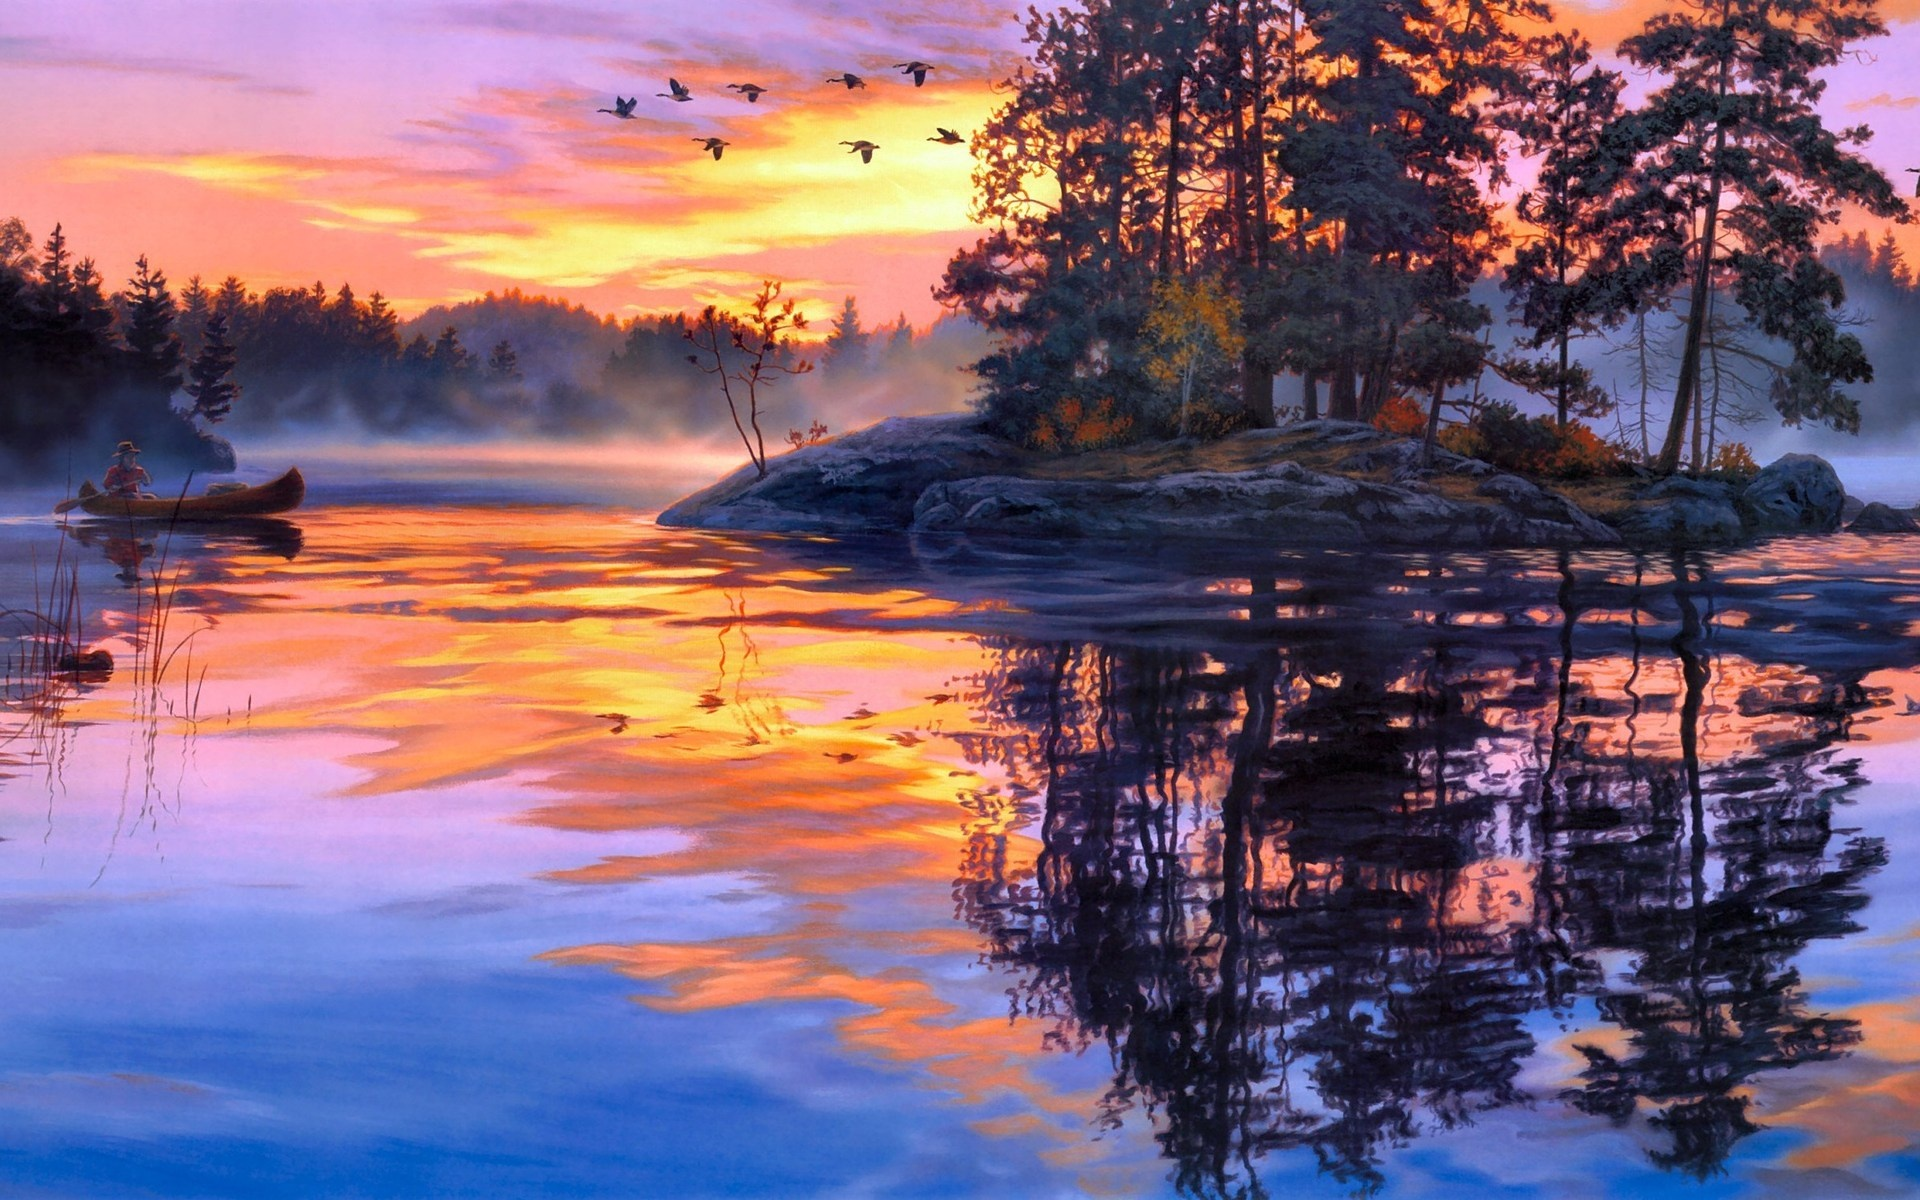 Landscape Scenery Painting  1920 x 1200  Download  Close